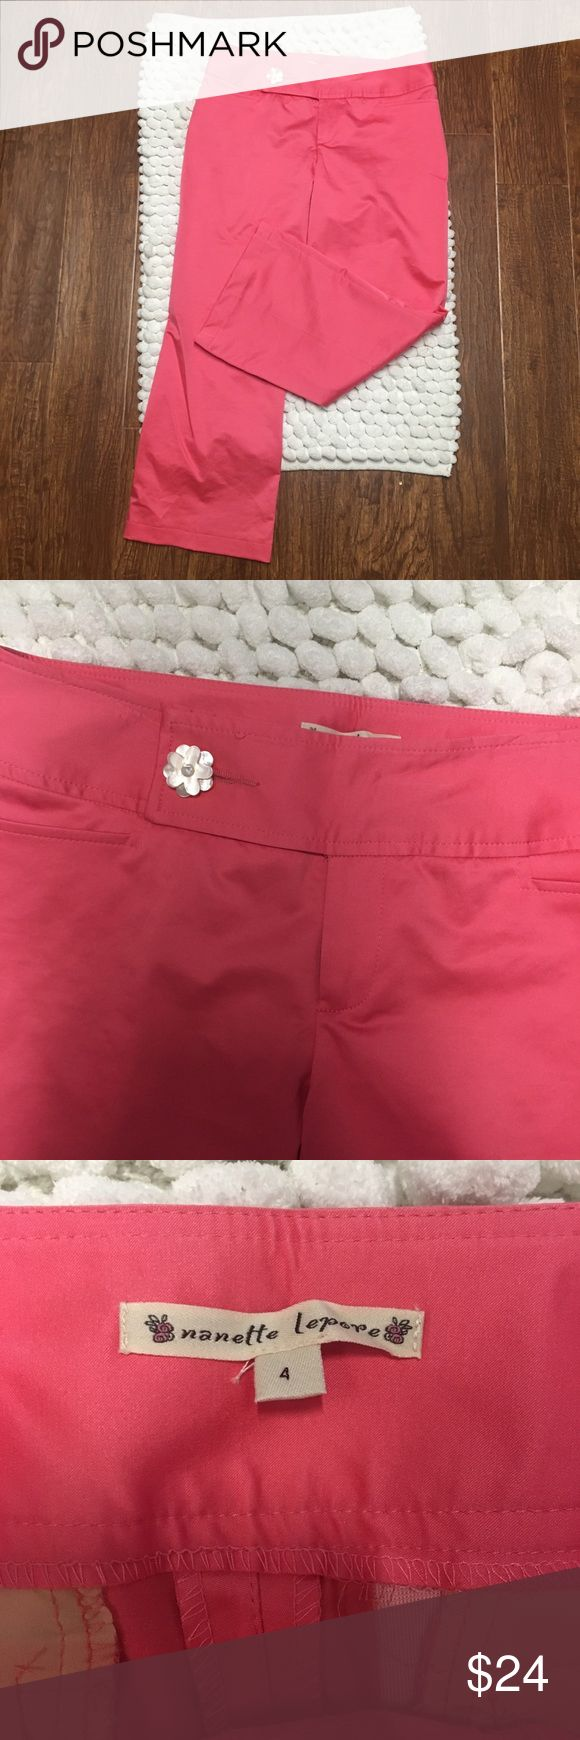 Nanette Lepore Pink pants Nanette Lepore Pink pants. Size 4. Excellent preowned condition. No stains or flaws. Bright and fun for summer. Add some cute sandals or strappy heels with a float tank top for a cute look., Nanette Lepore Pants